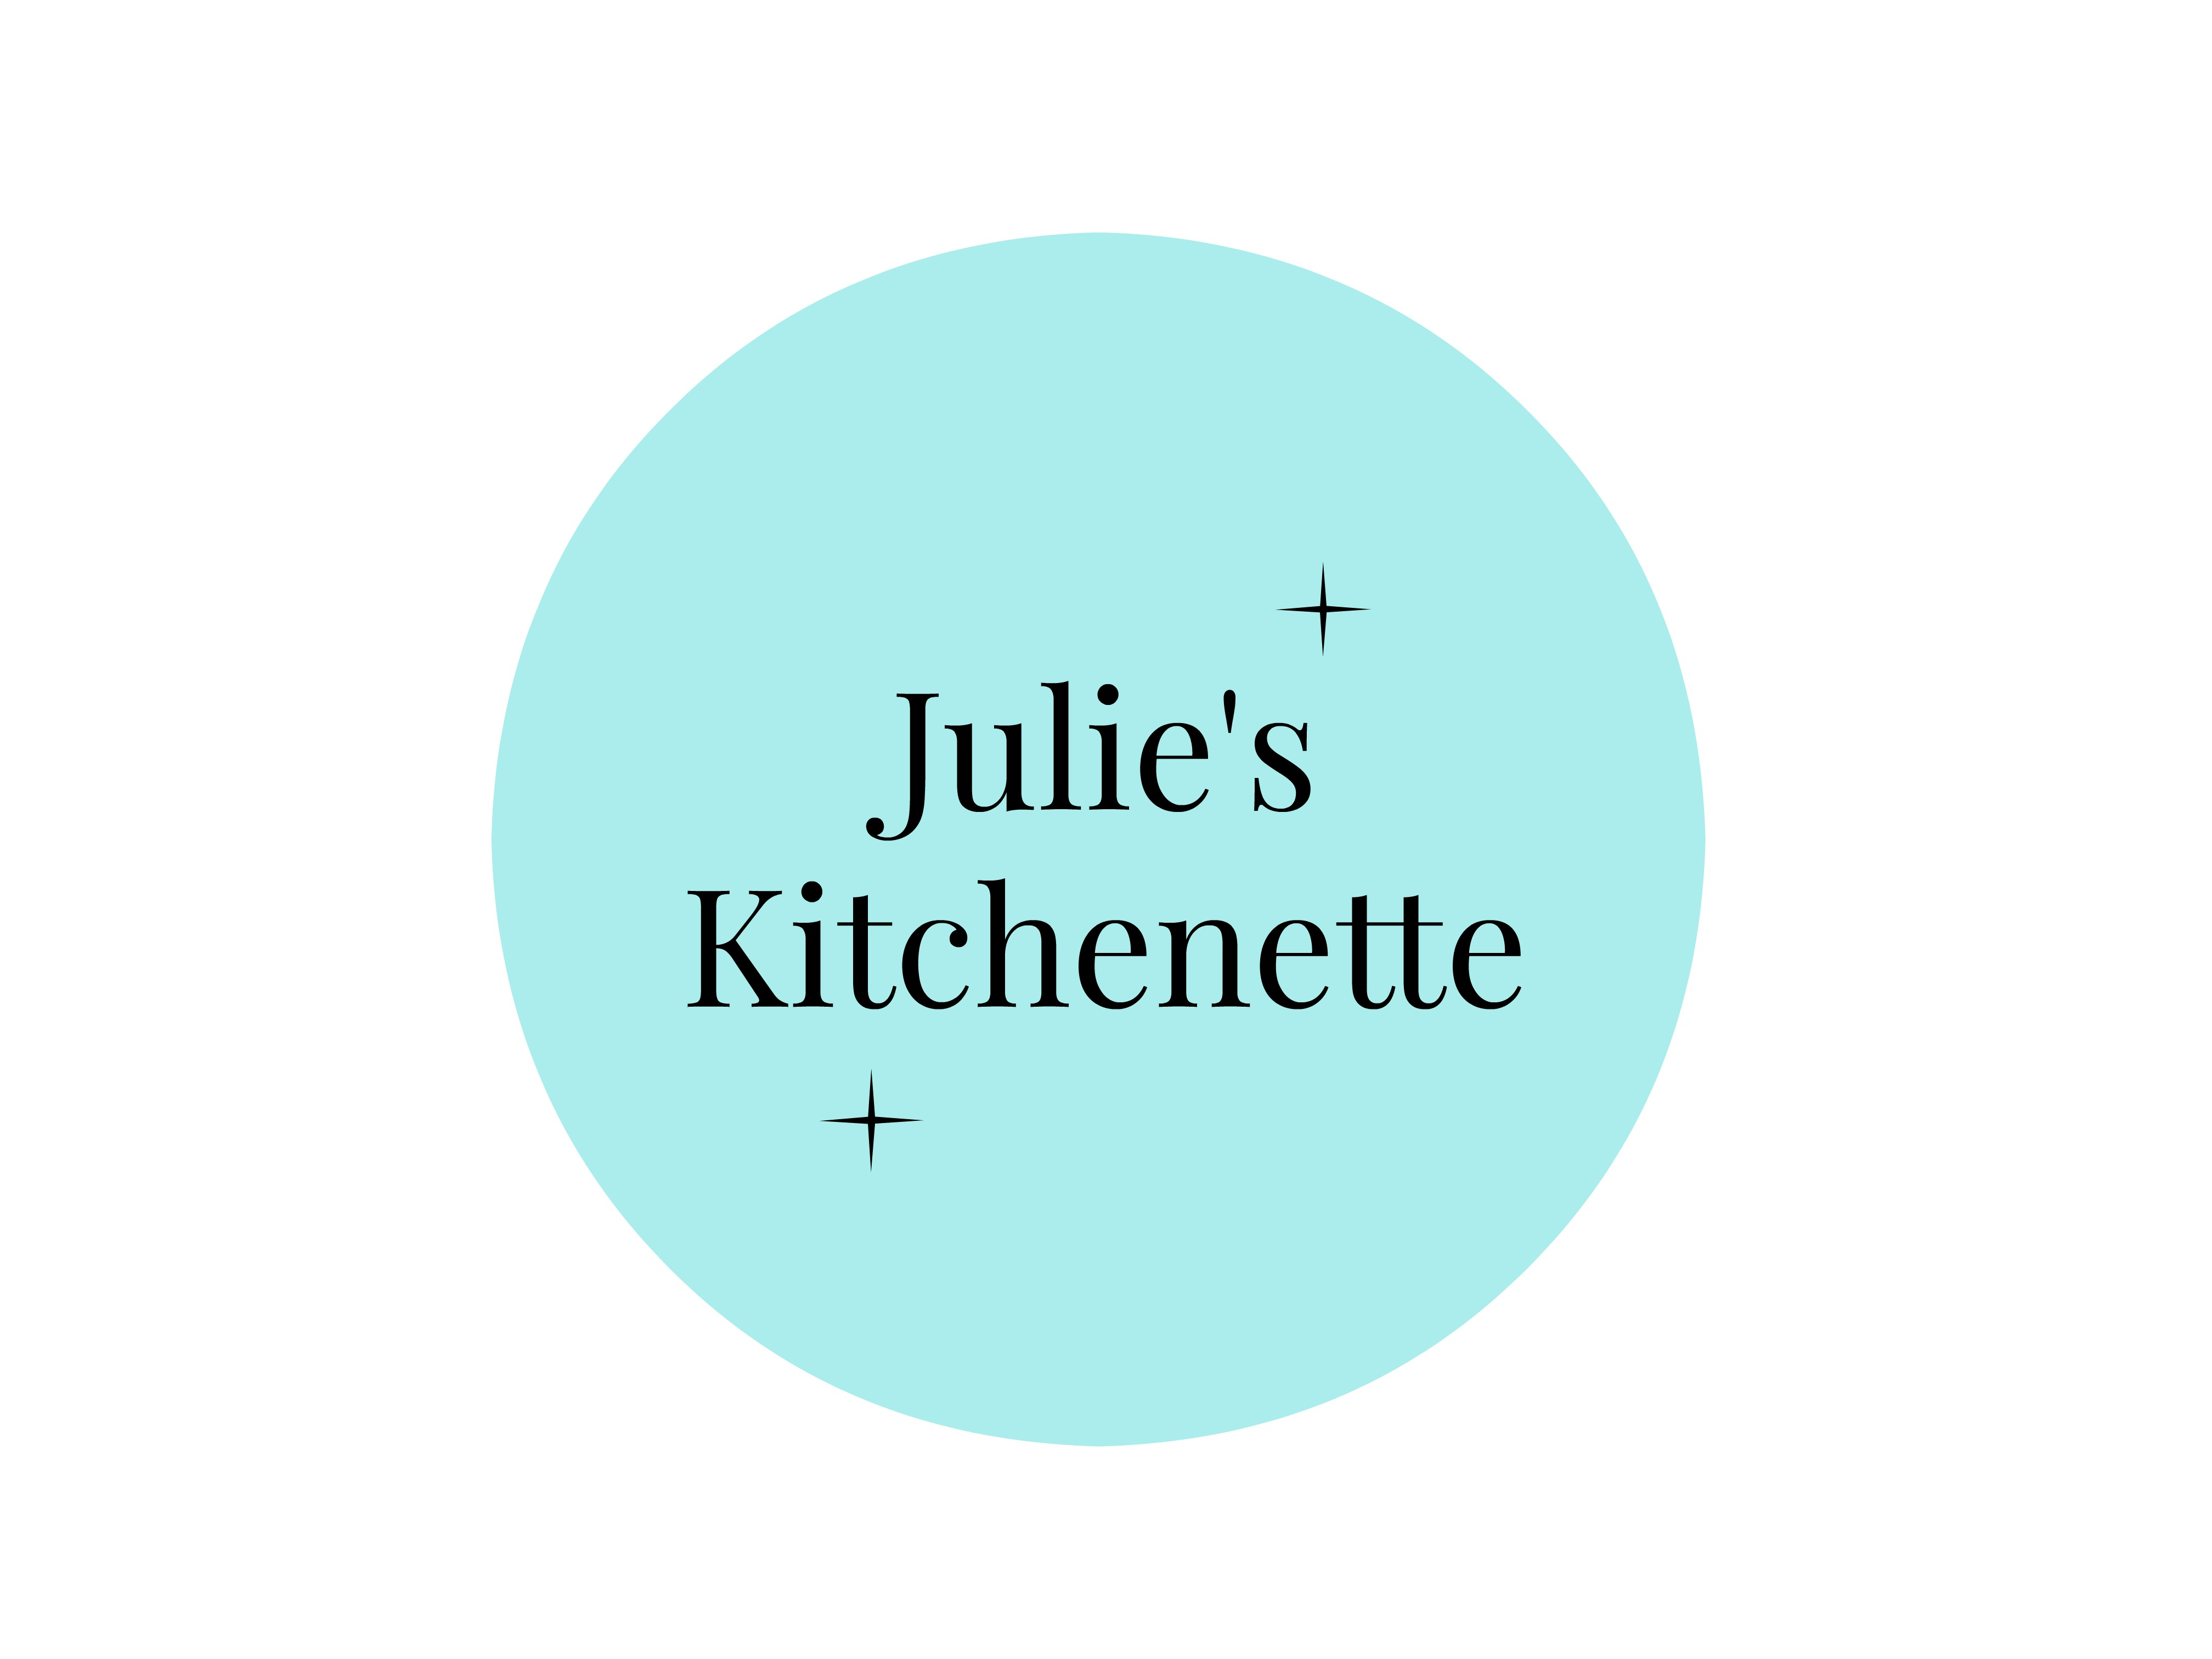 Julie's Kitchenette on YouTube